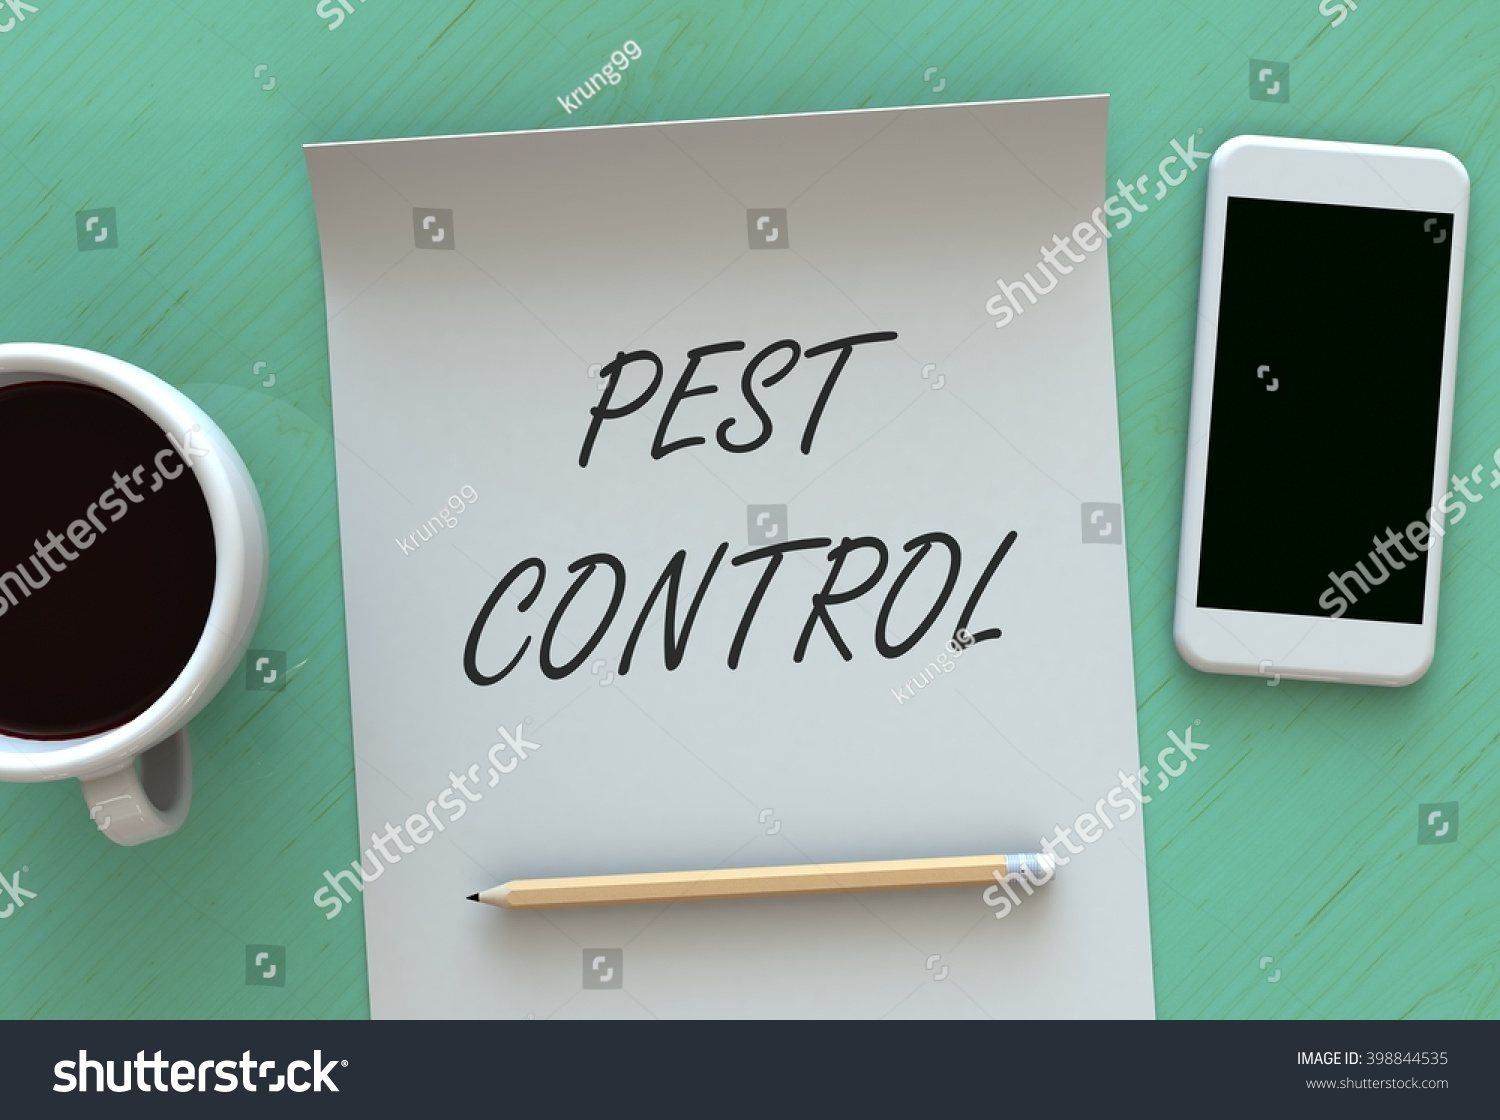 Pest control 3d rendering message on stock illustration 398844535 pest control 3d rendering message on paper smart phone and coffee on table geotapseo Gallery